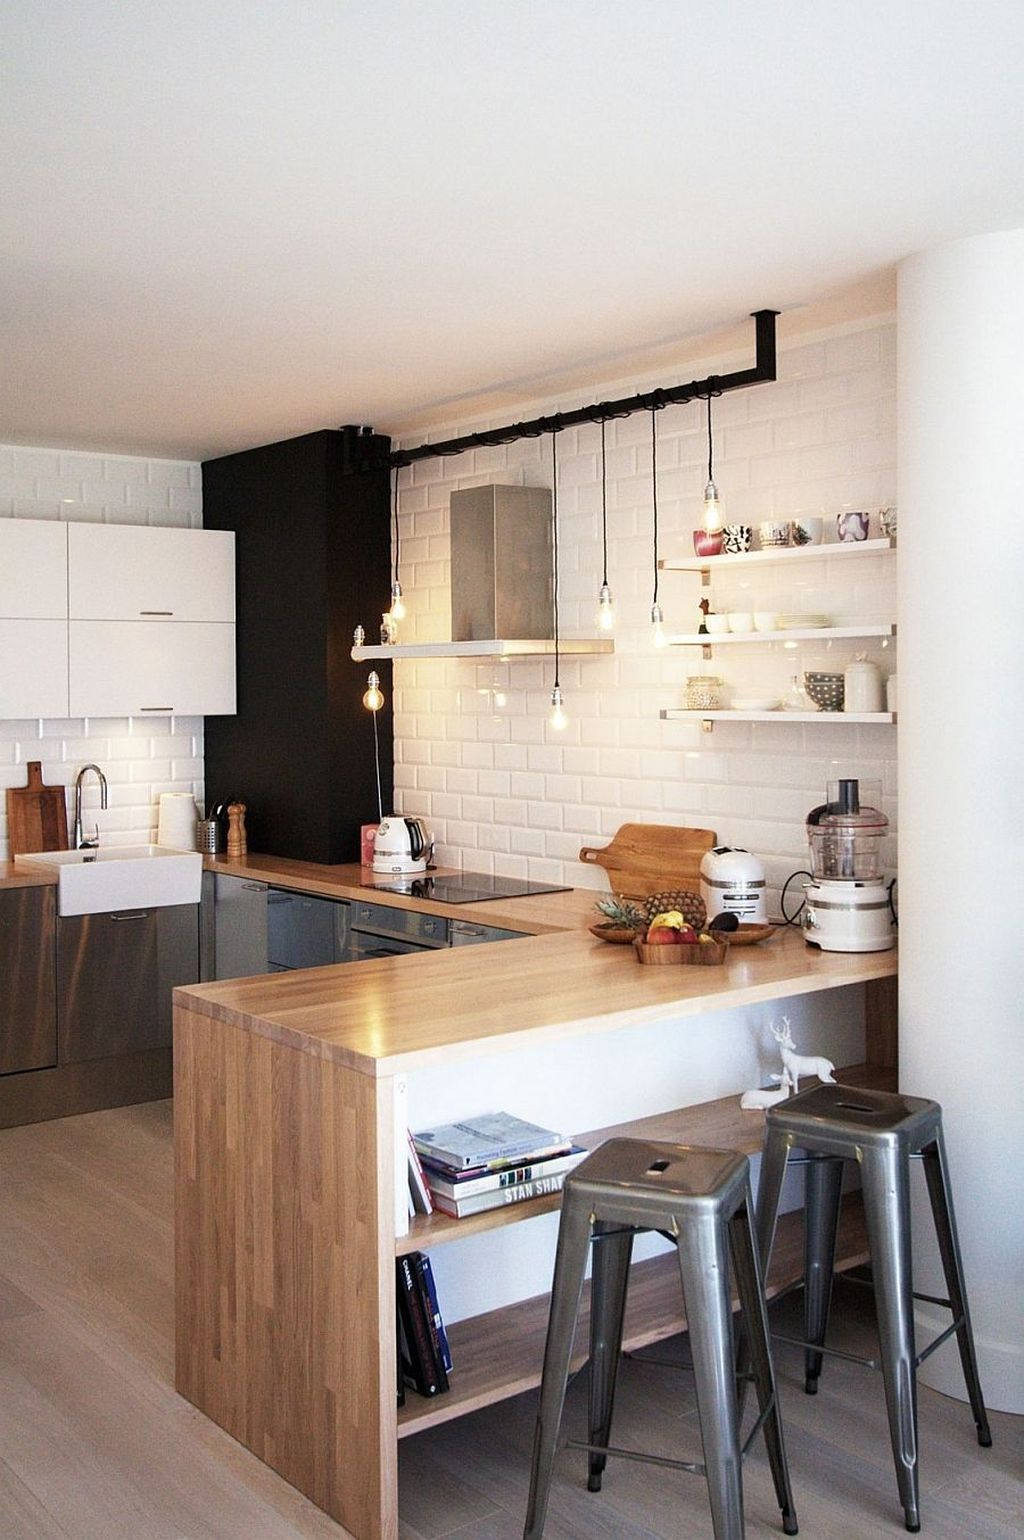 40+ Best Simple Kitchen Design Ideas On A Budget The